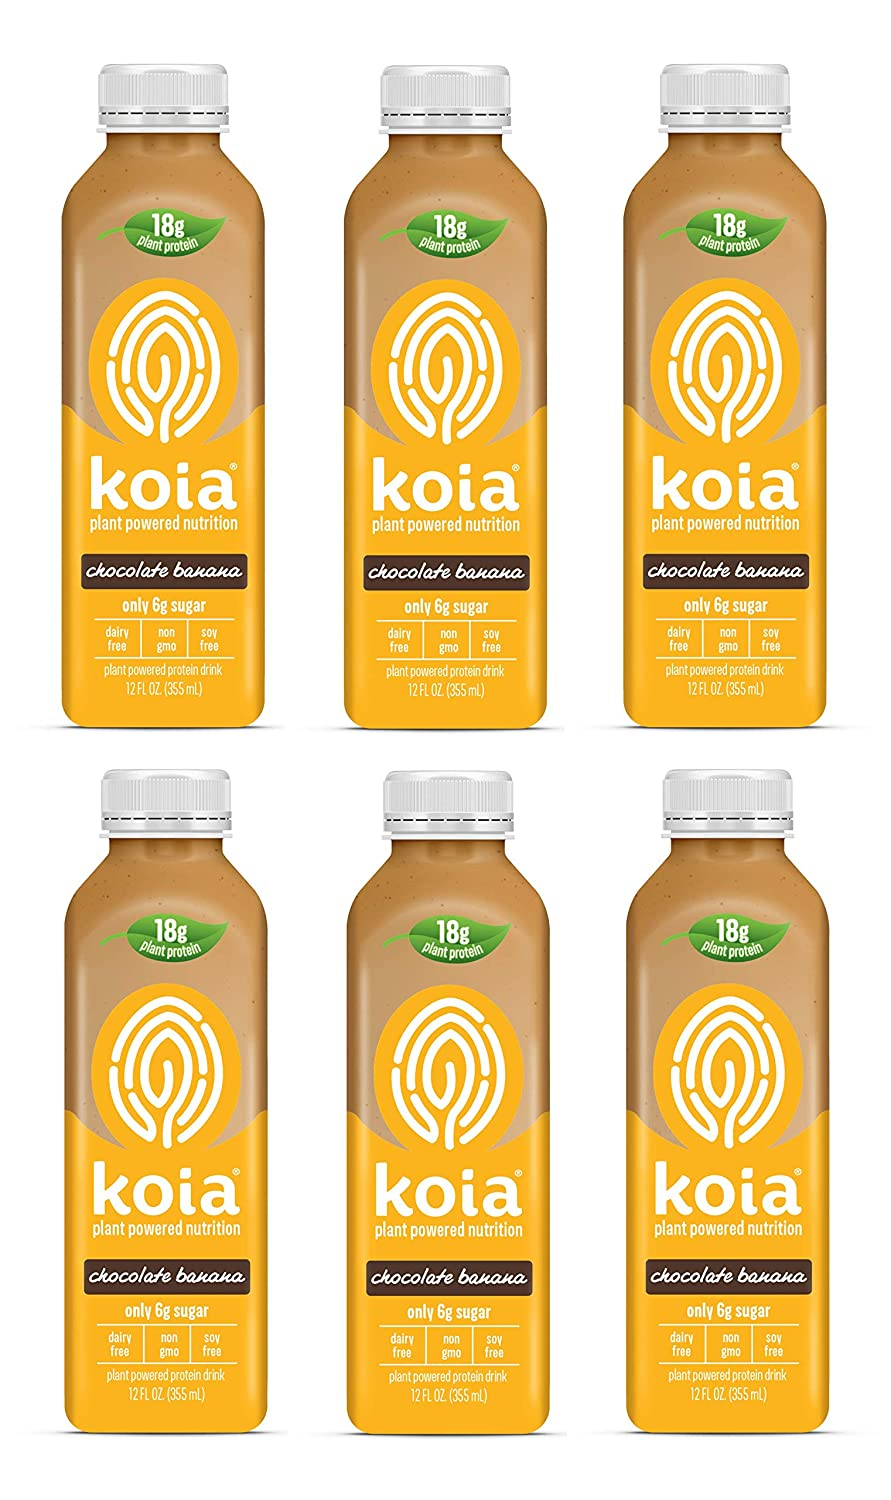 Koia Chocolate Banana Plant Powered oz Ranking integrated 1st place 12 Don't miss the campaign 6 Nutrition Pack